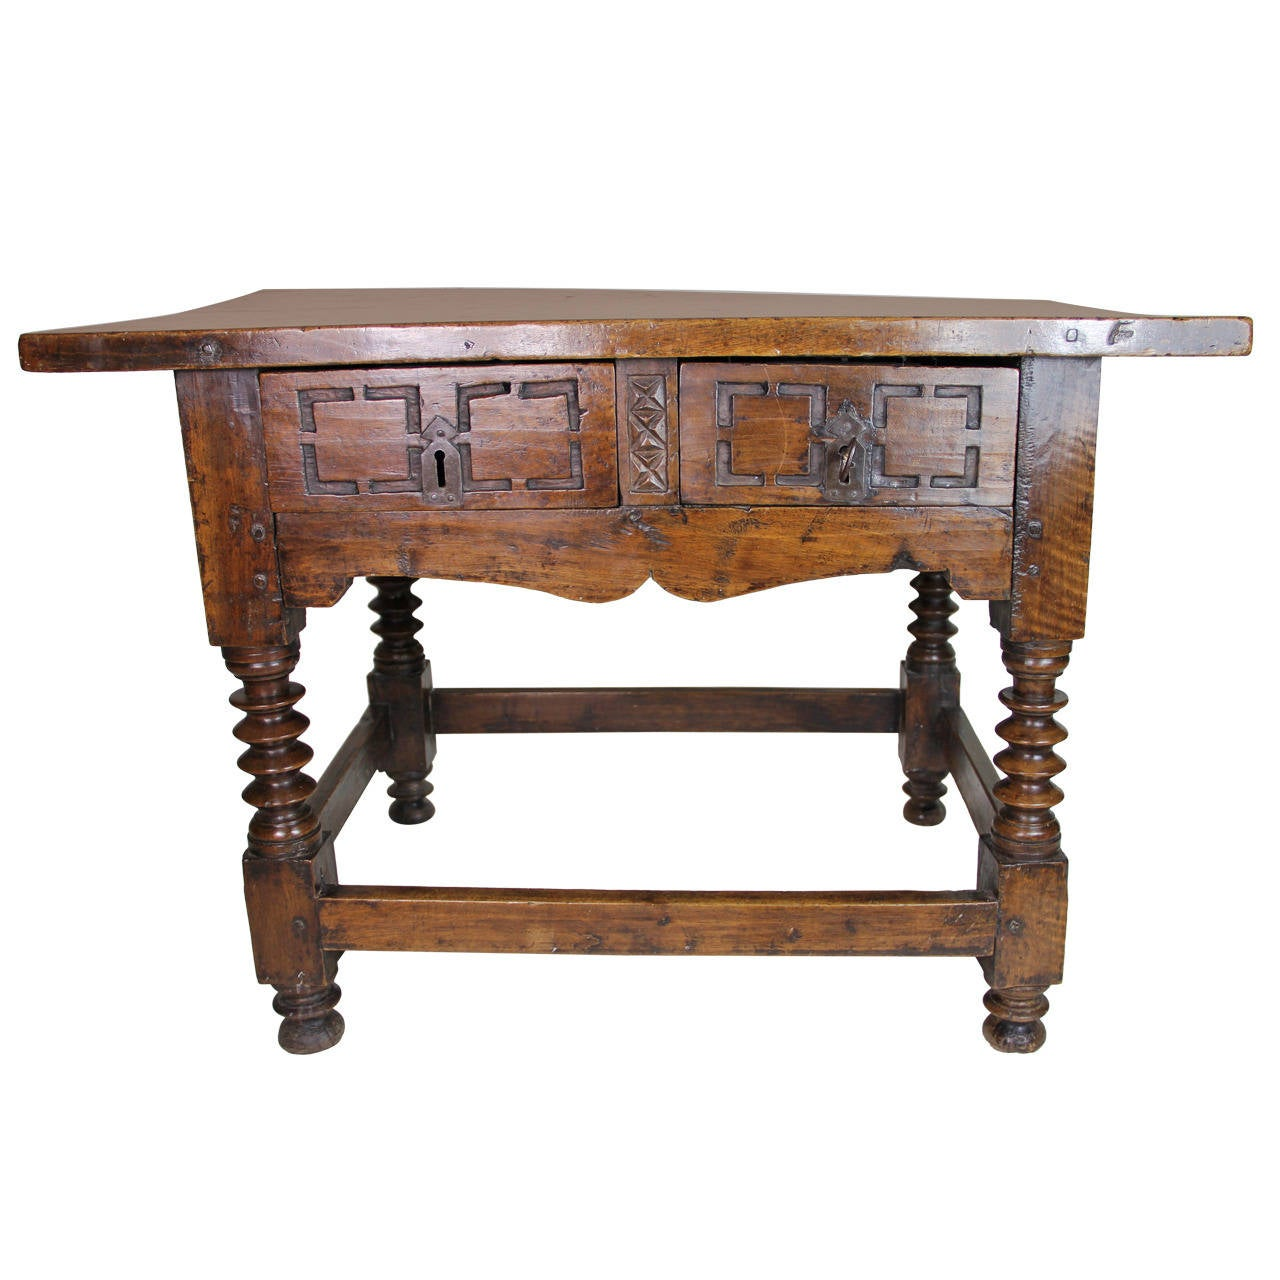 Baroque spanish table at 1stdibs for Spanish baroque furniture